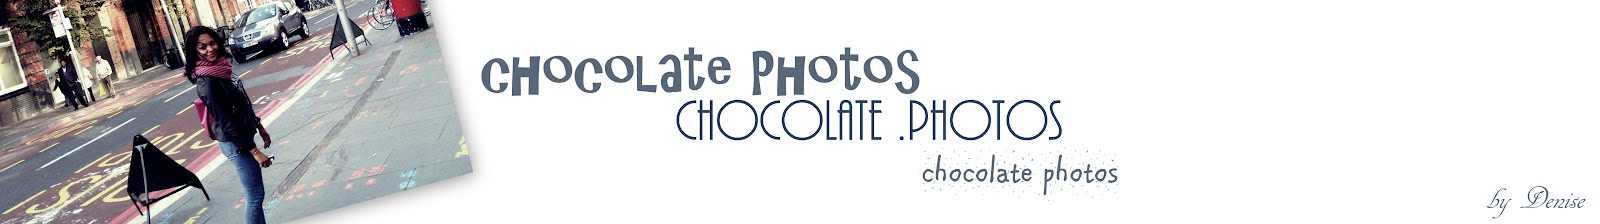 Chocolate.Photos.